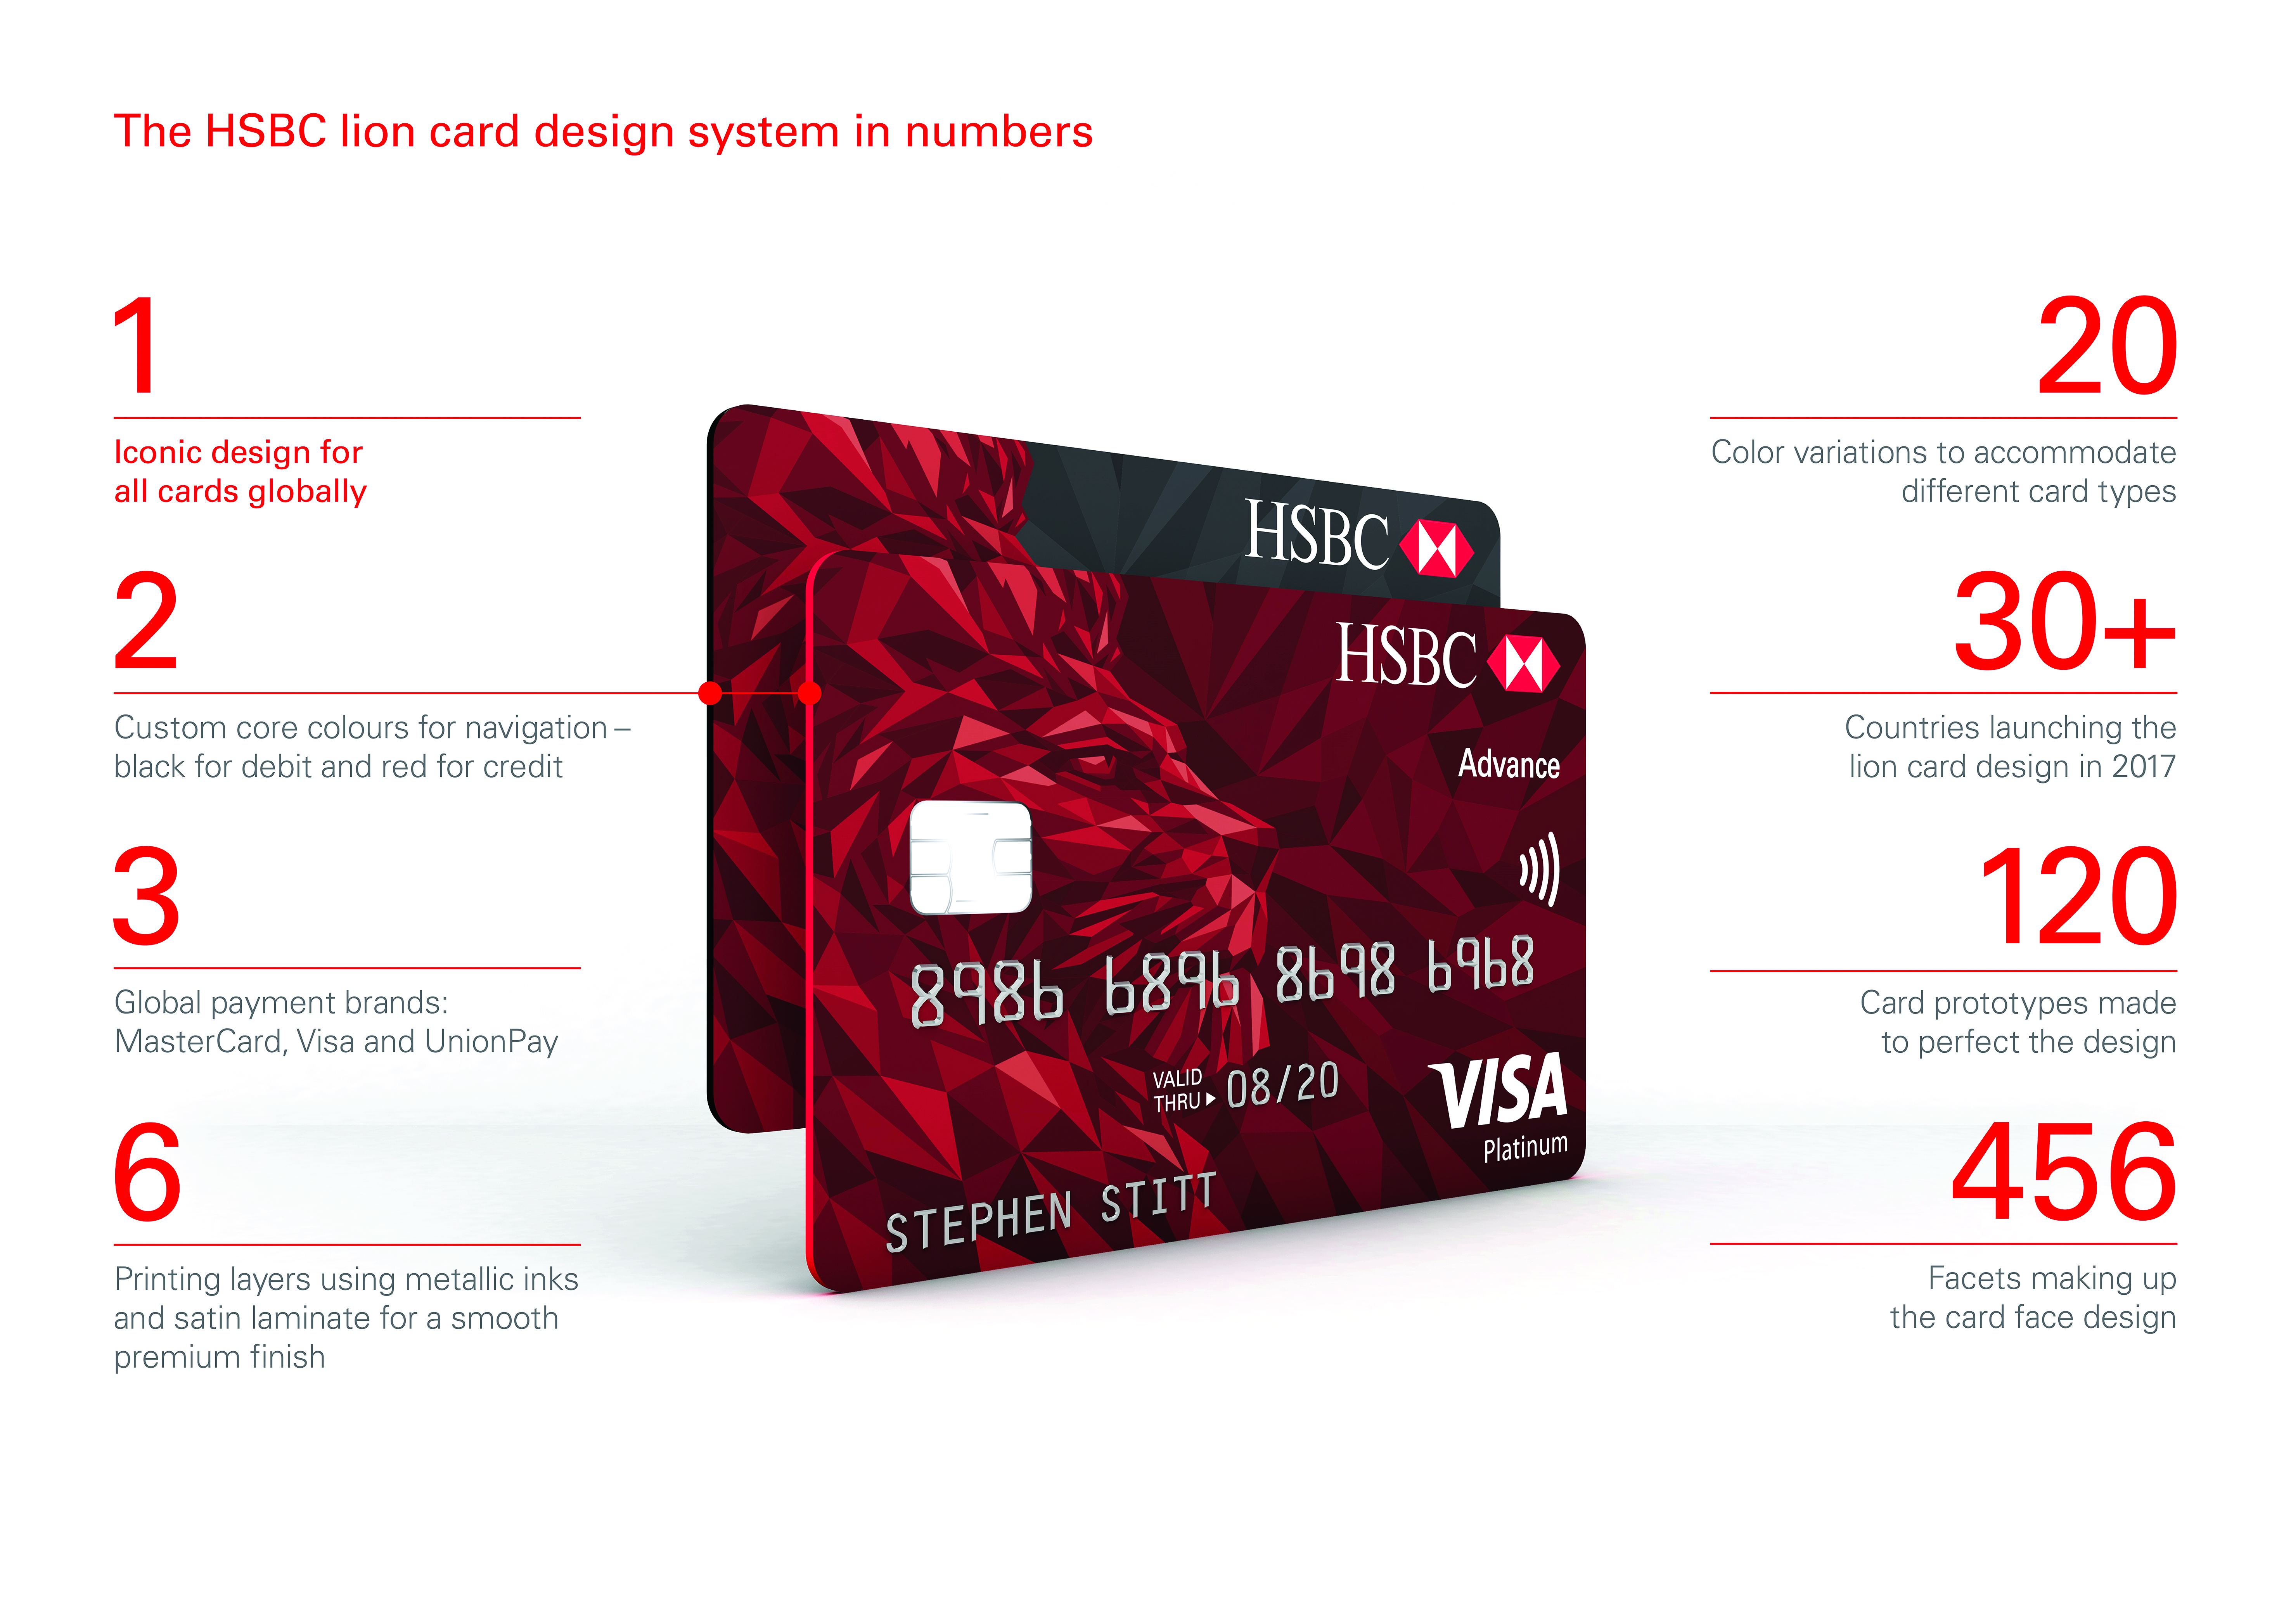 hsbc collaborates with shift to upgrade all its card designs